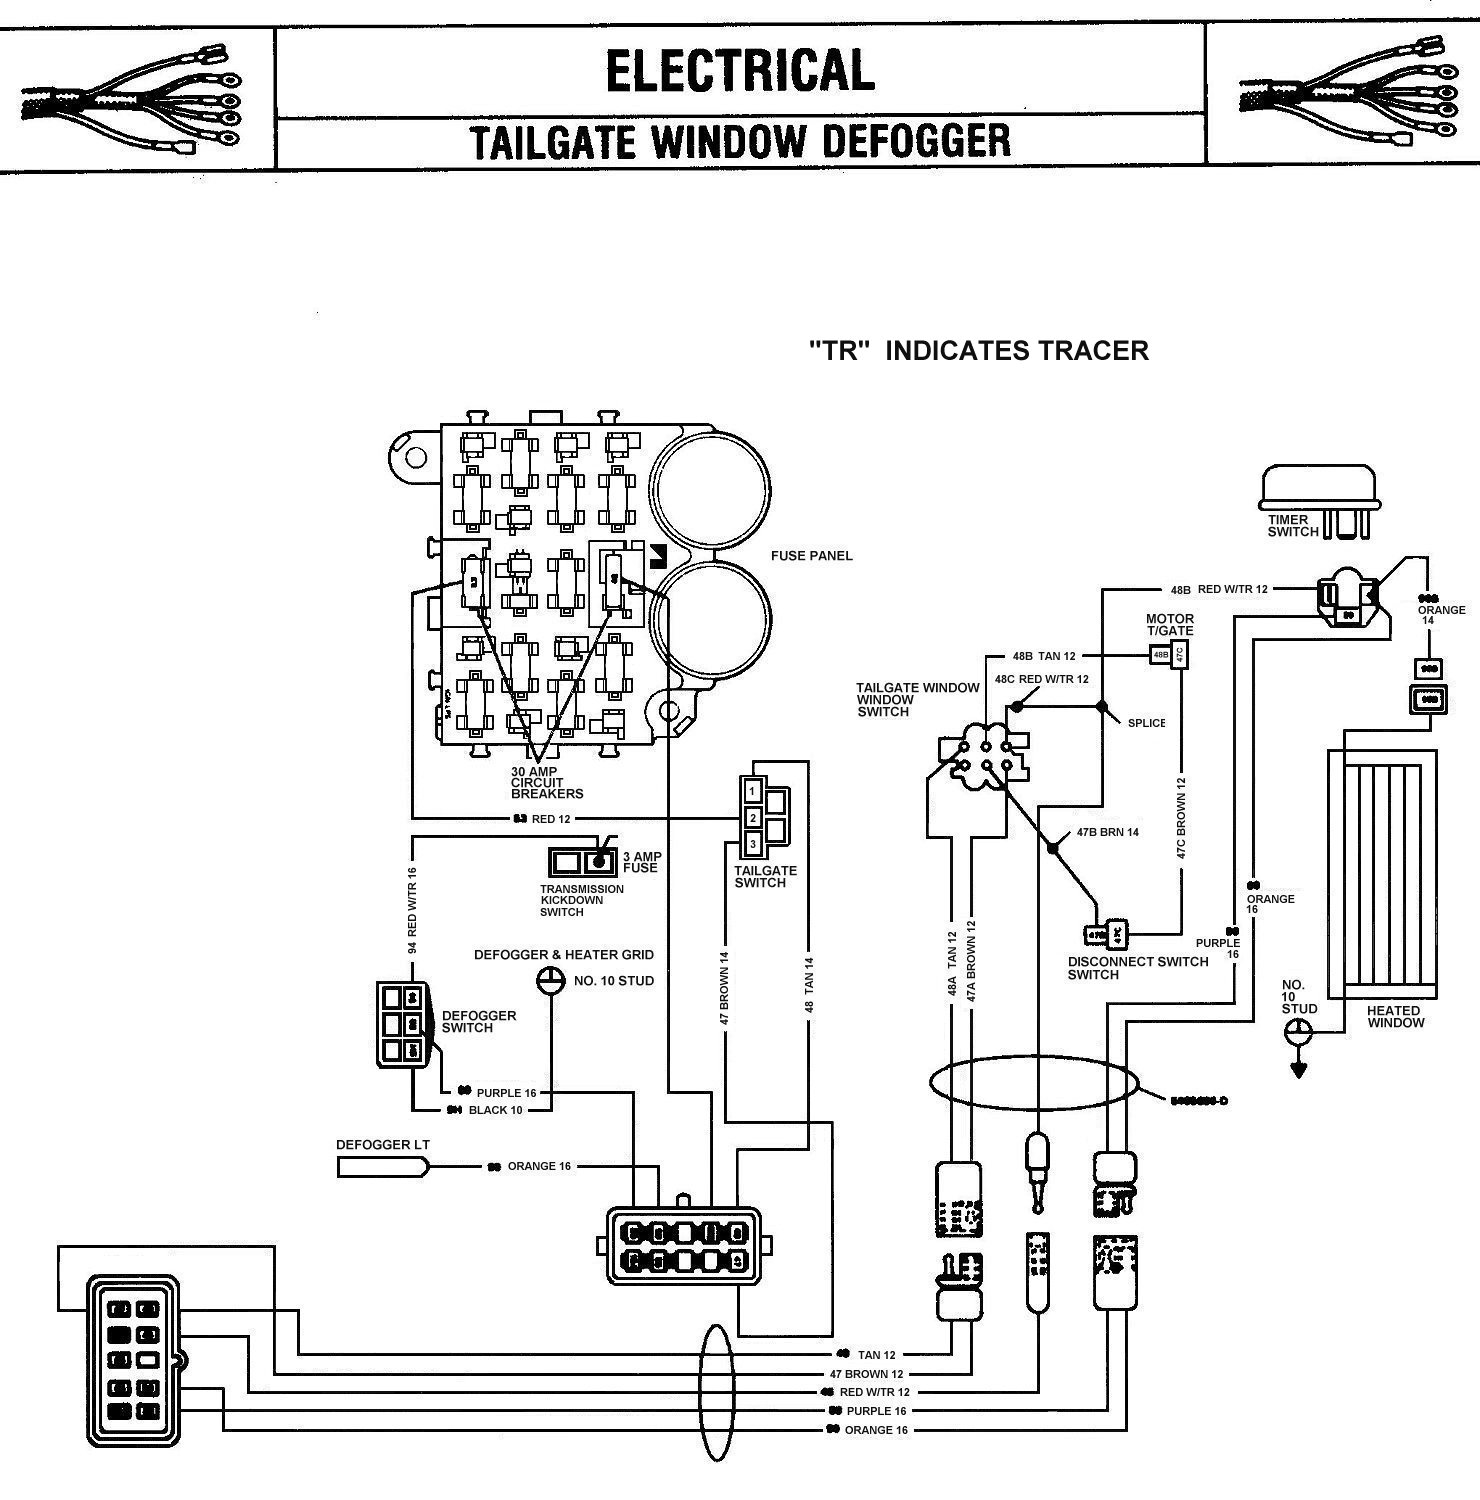 hight resolution of 84 j10 v8 jeep wiring diagram simple wiring schema electrical system diagram amc 360 wiring diagram